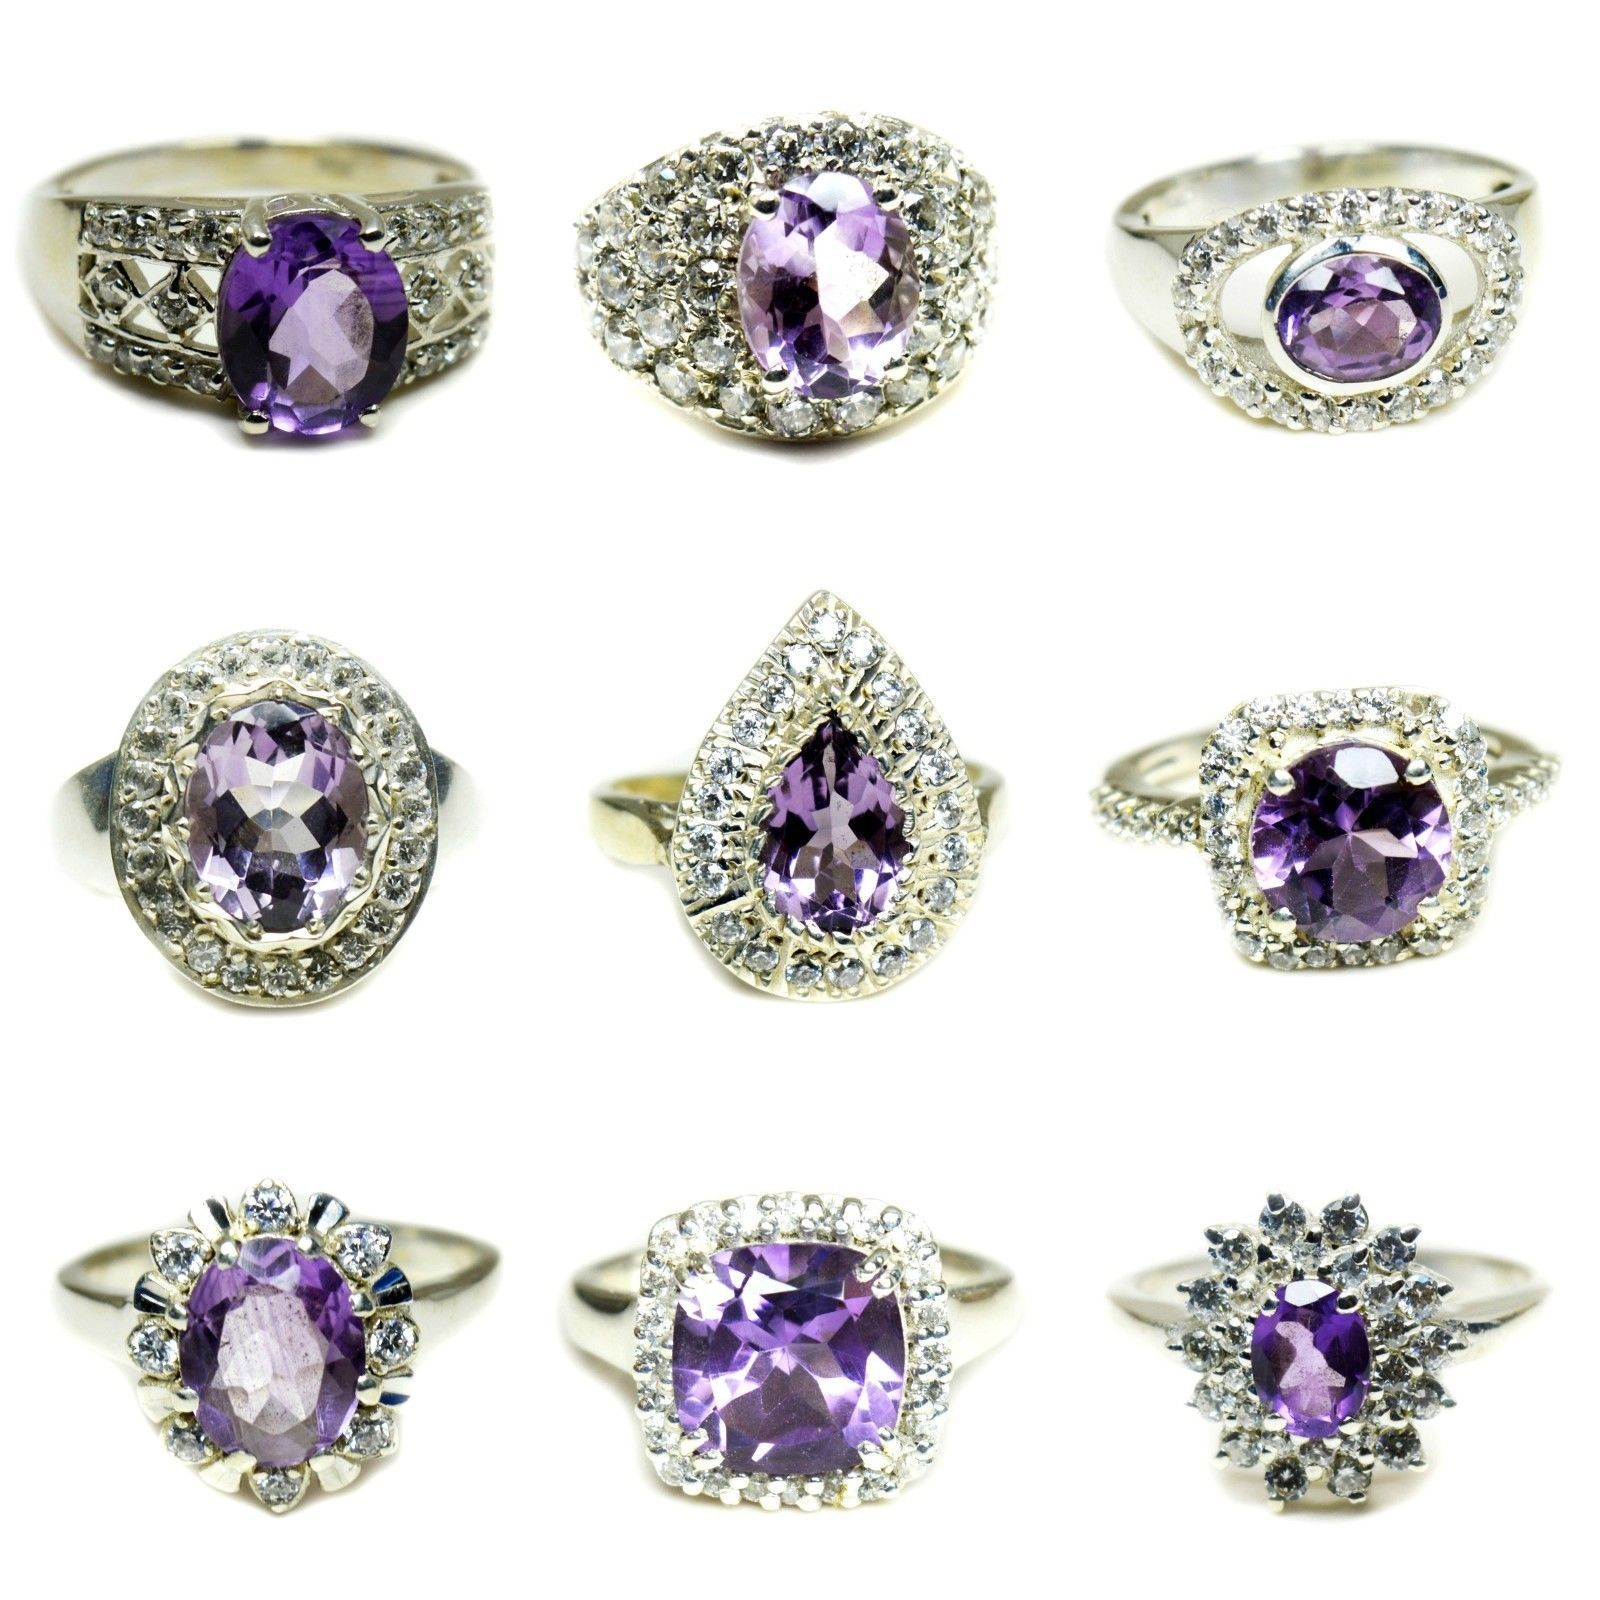 Primary image for Natural Amethyst Halo Ring Silver Purple Stone Jewelry Size 5,6,7,8,9,10,11,12